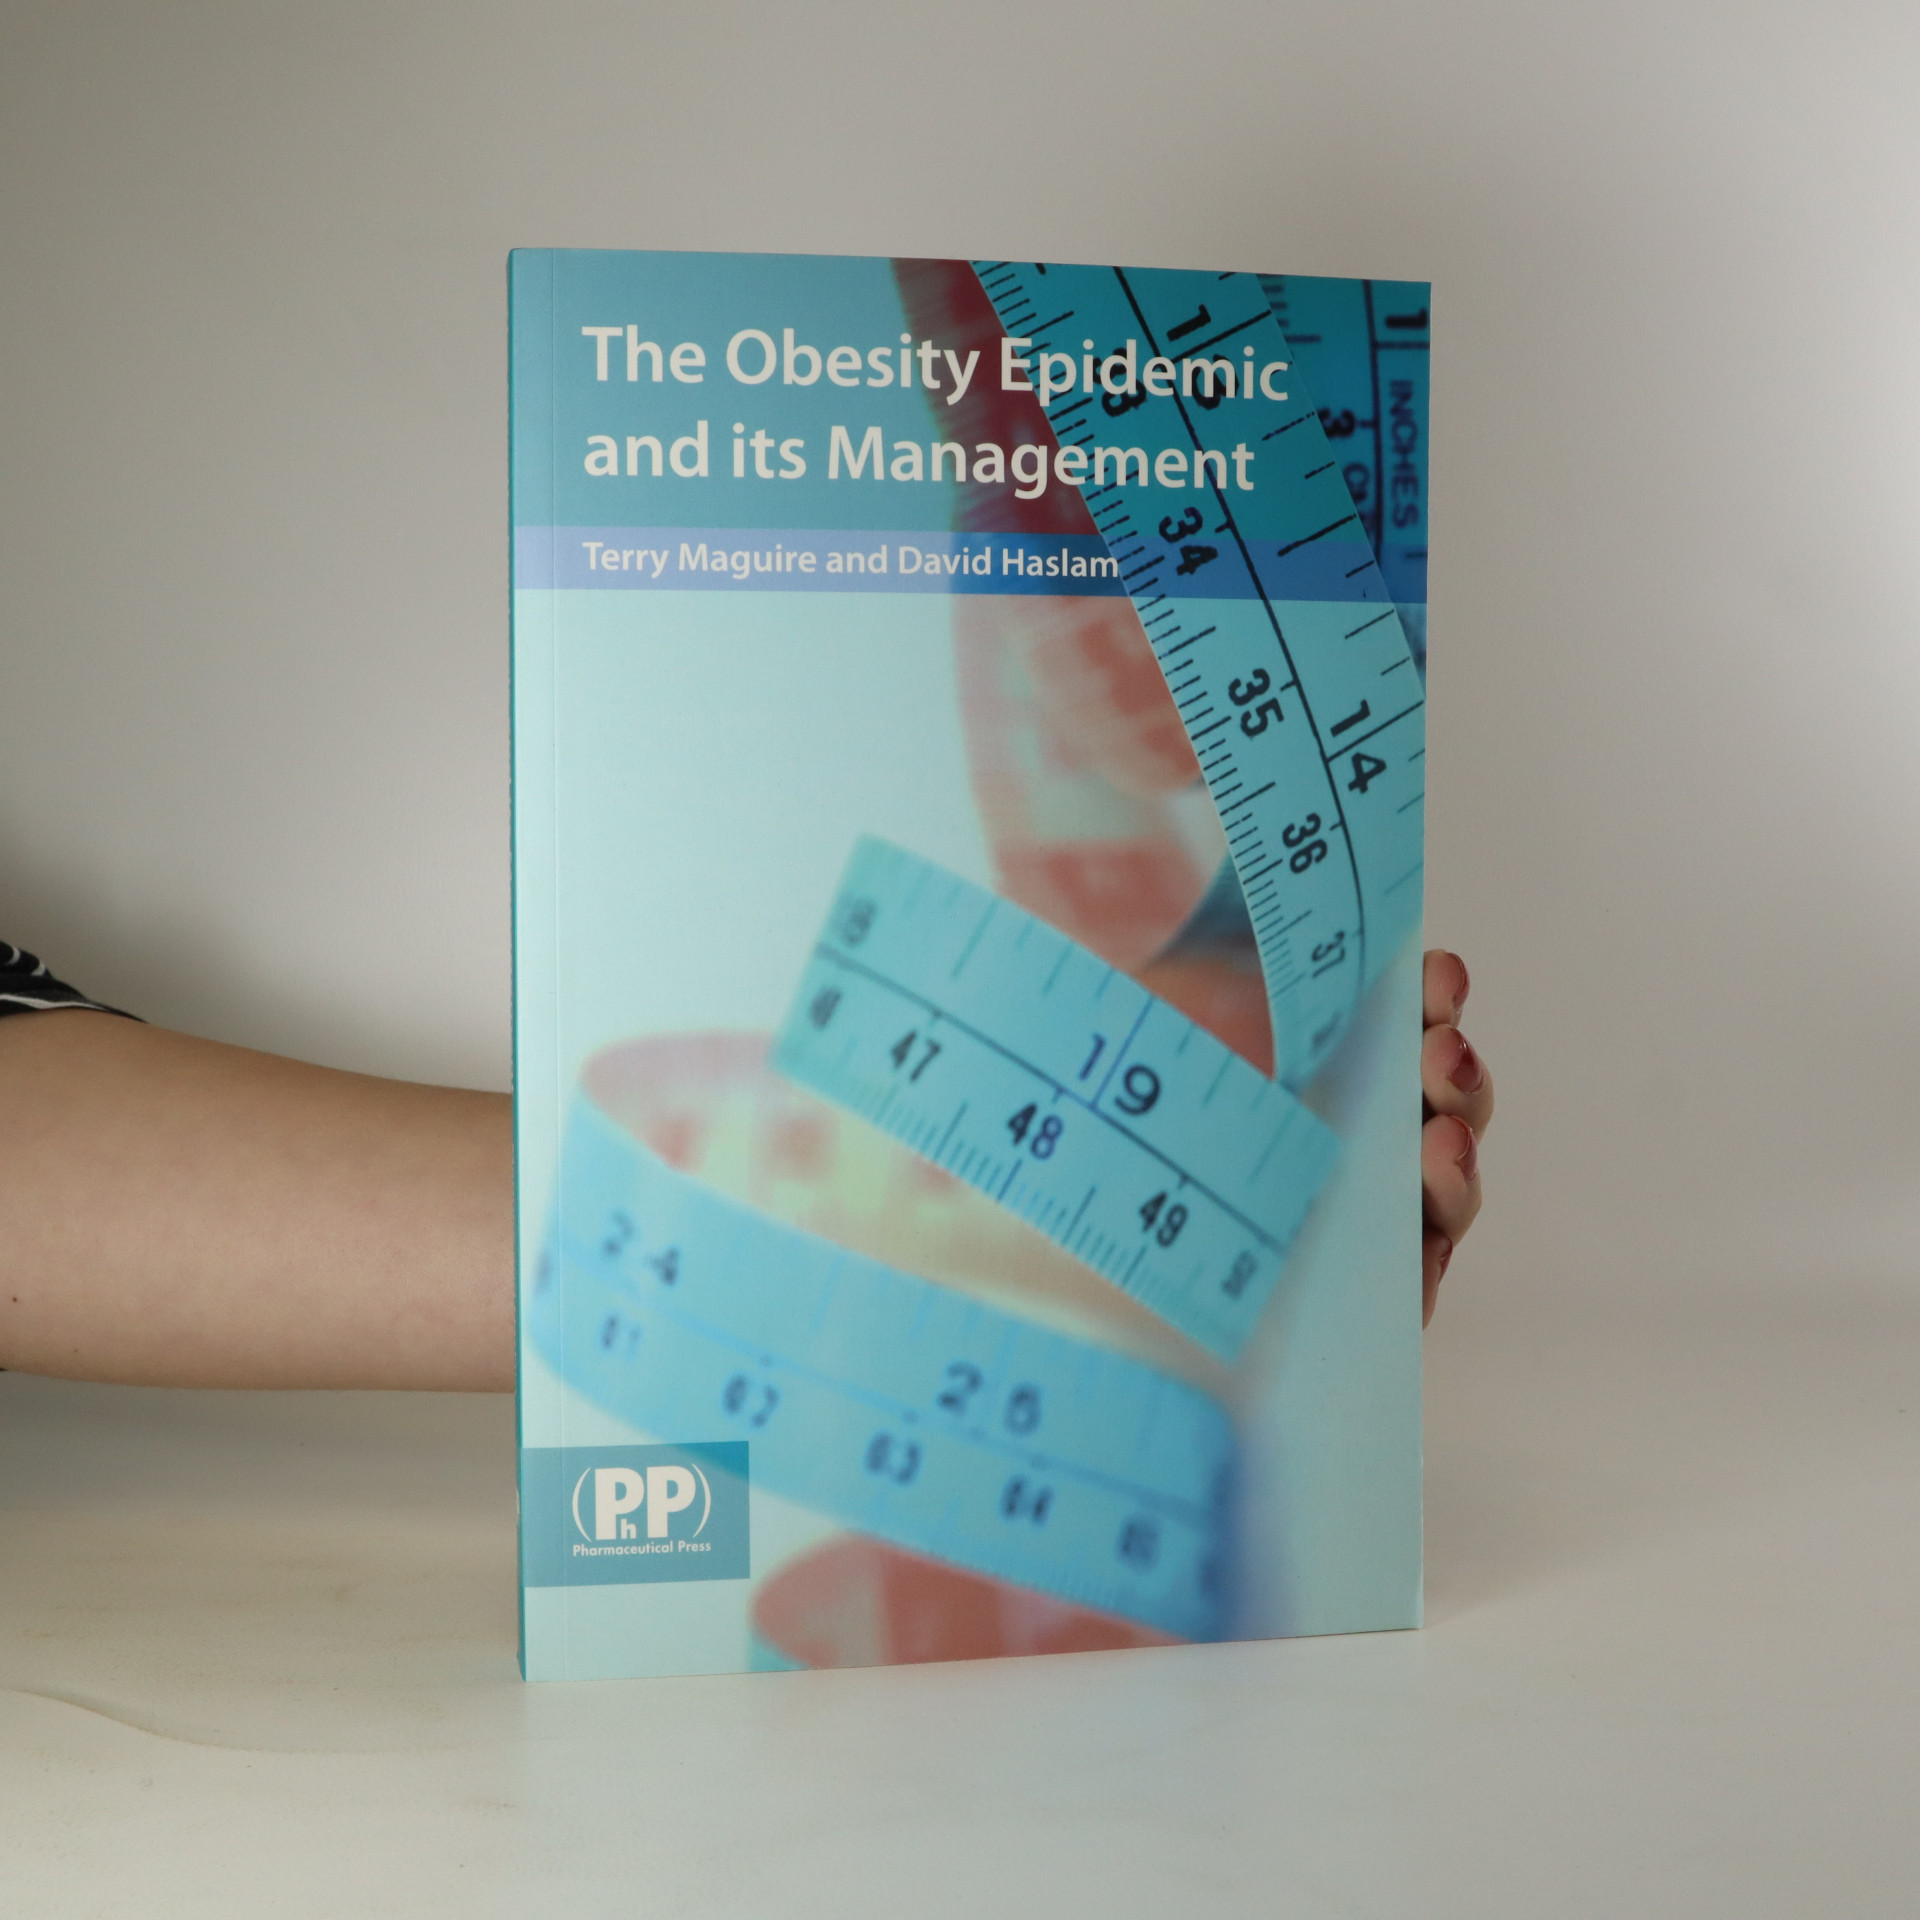 antikvární kniha The Obesity Epidemic and its Management, 2009